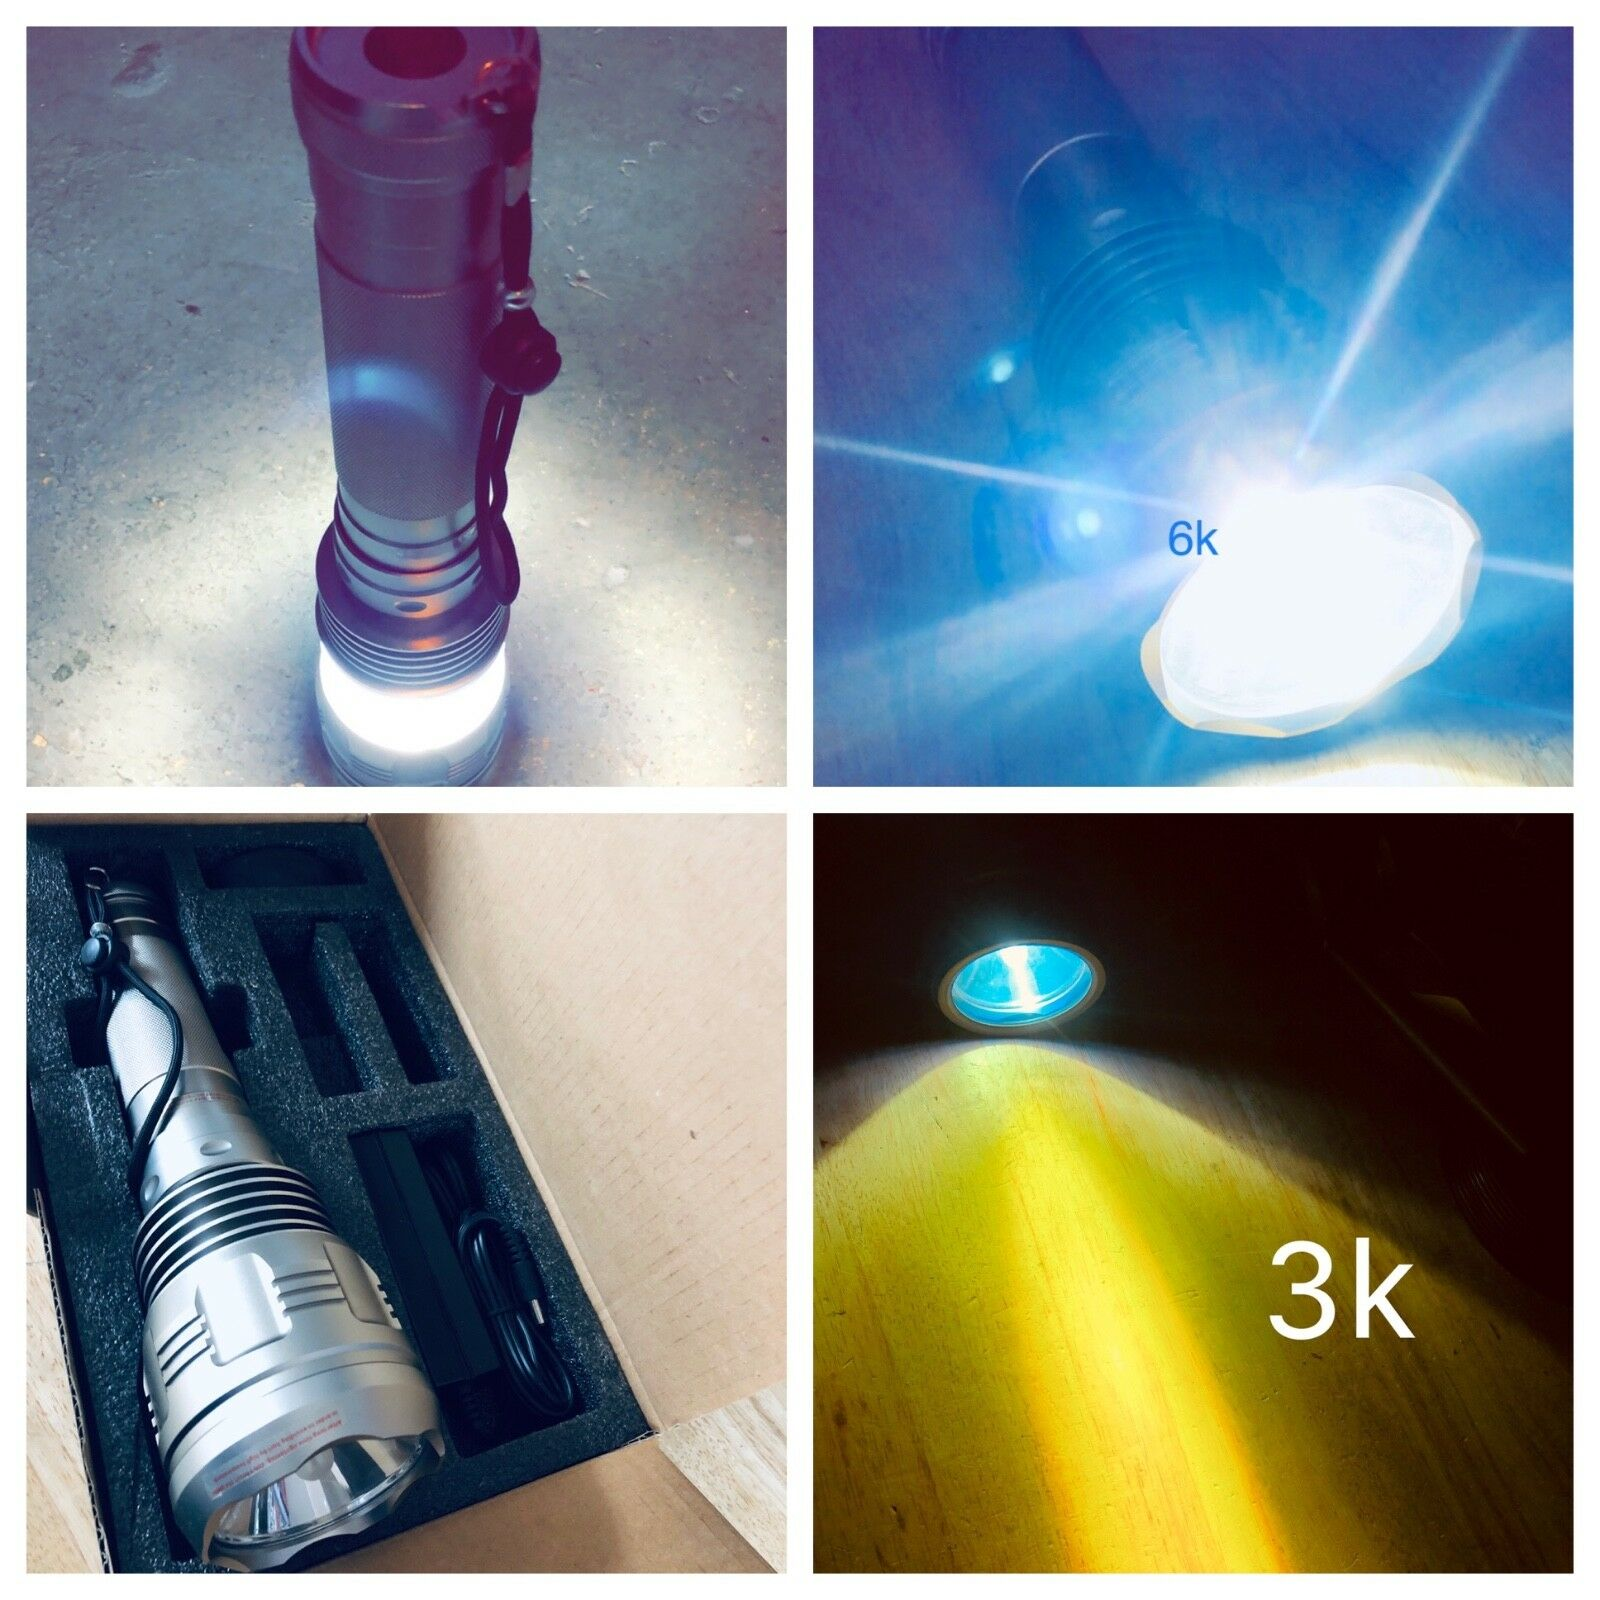 HID Xenon led Torch Flashlight Outdoor 8000 Lumens streetlight match snap on